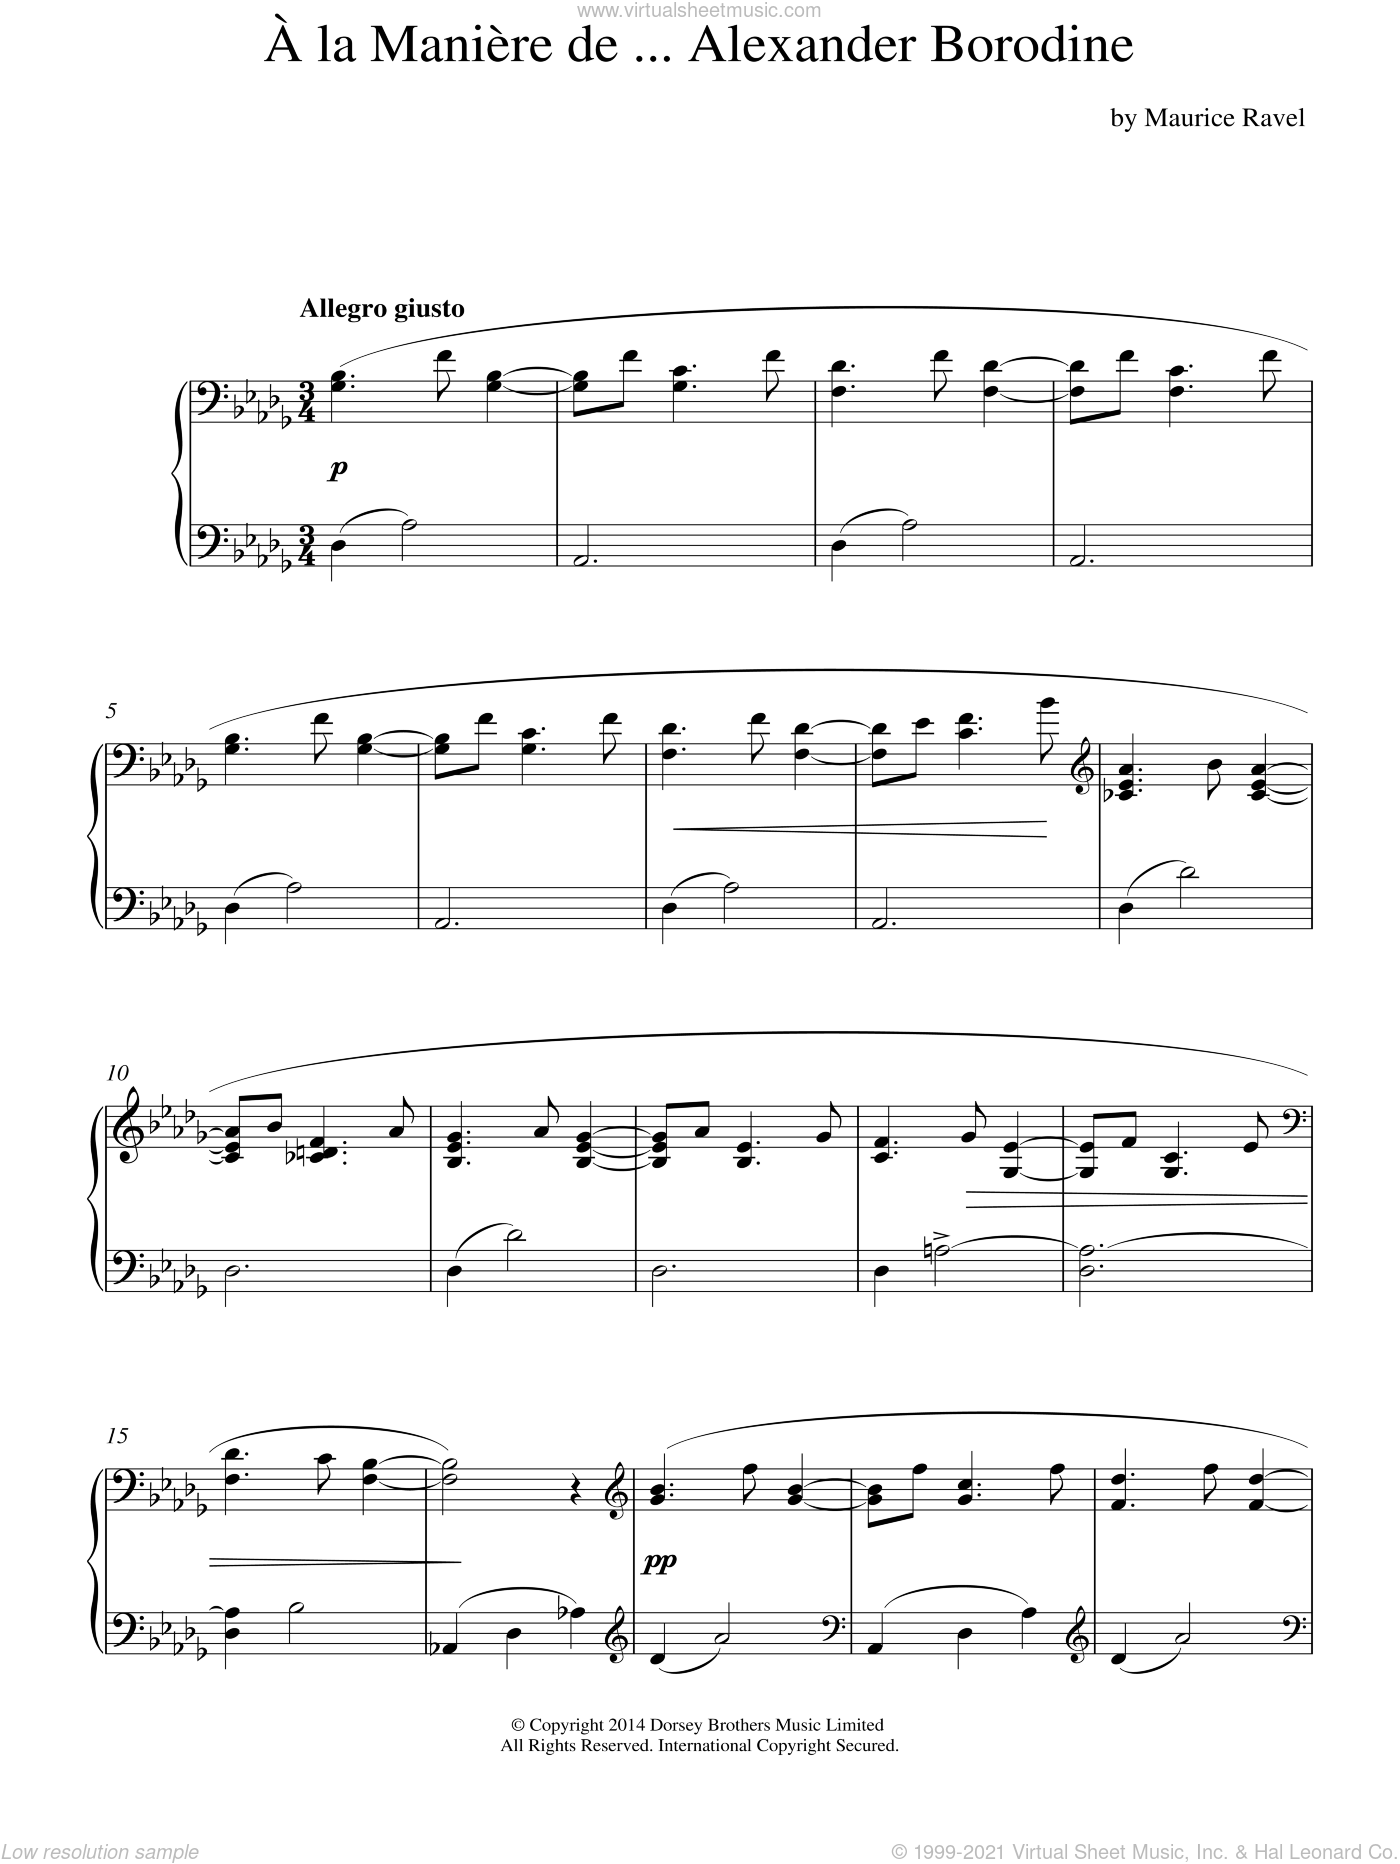 A La Maniere De Alexander Borodine sheet music for piano solo by Maurice Ravel, classical score, intermediate skill level